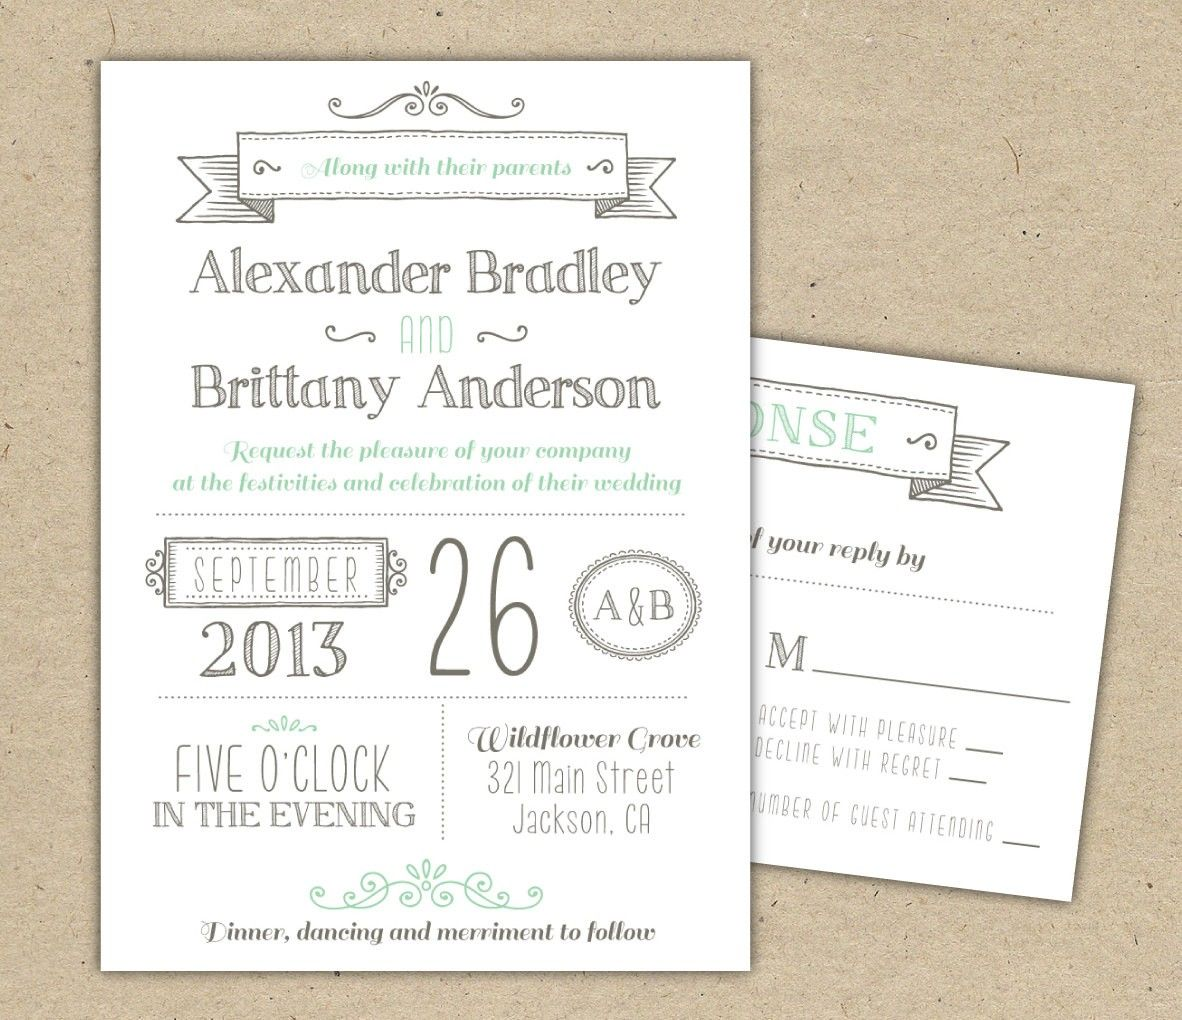 free printable wedding invitation layout carsforum izepmom, wedding cards